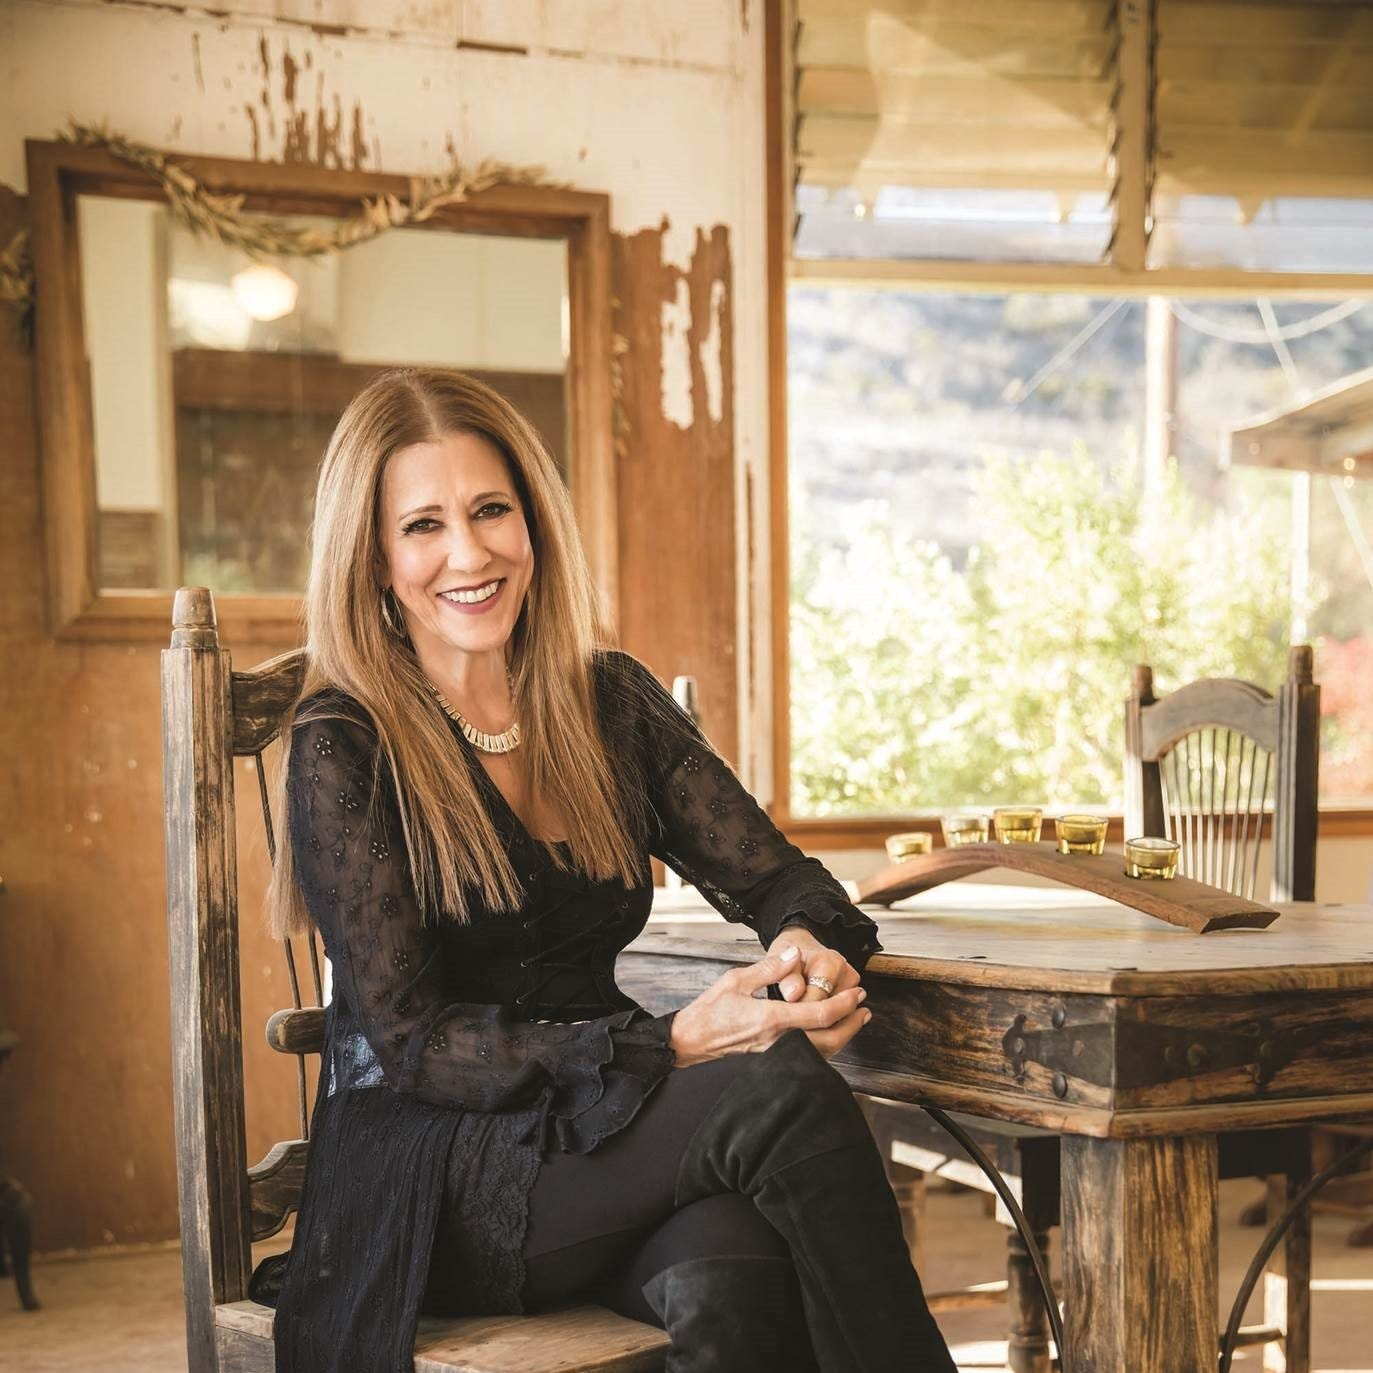 Rita Coolidge is finally home, happy and off to The Moon